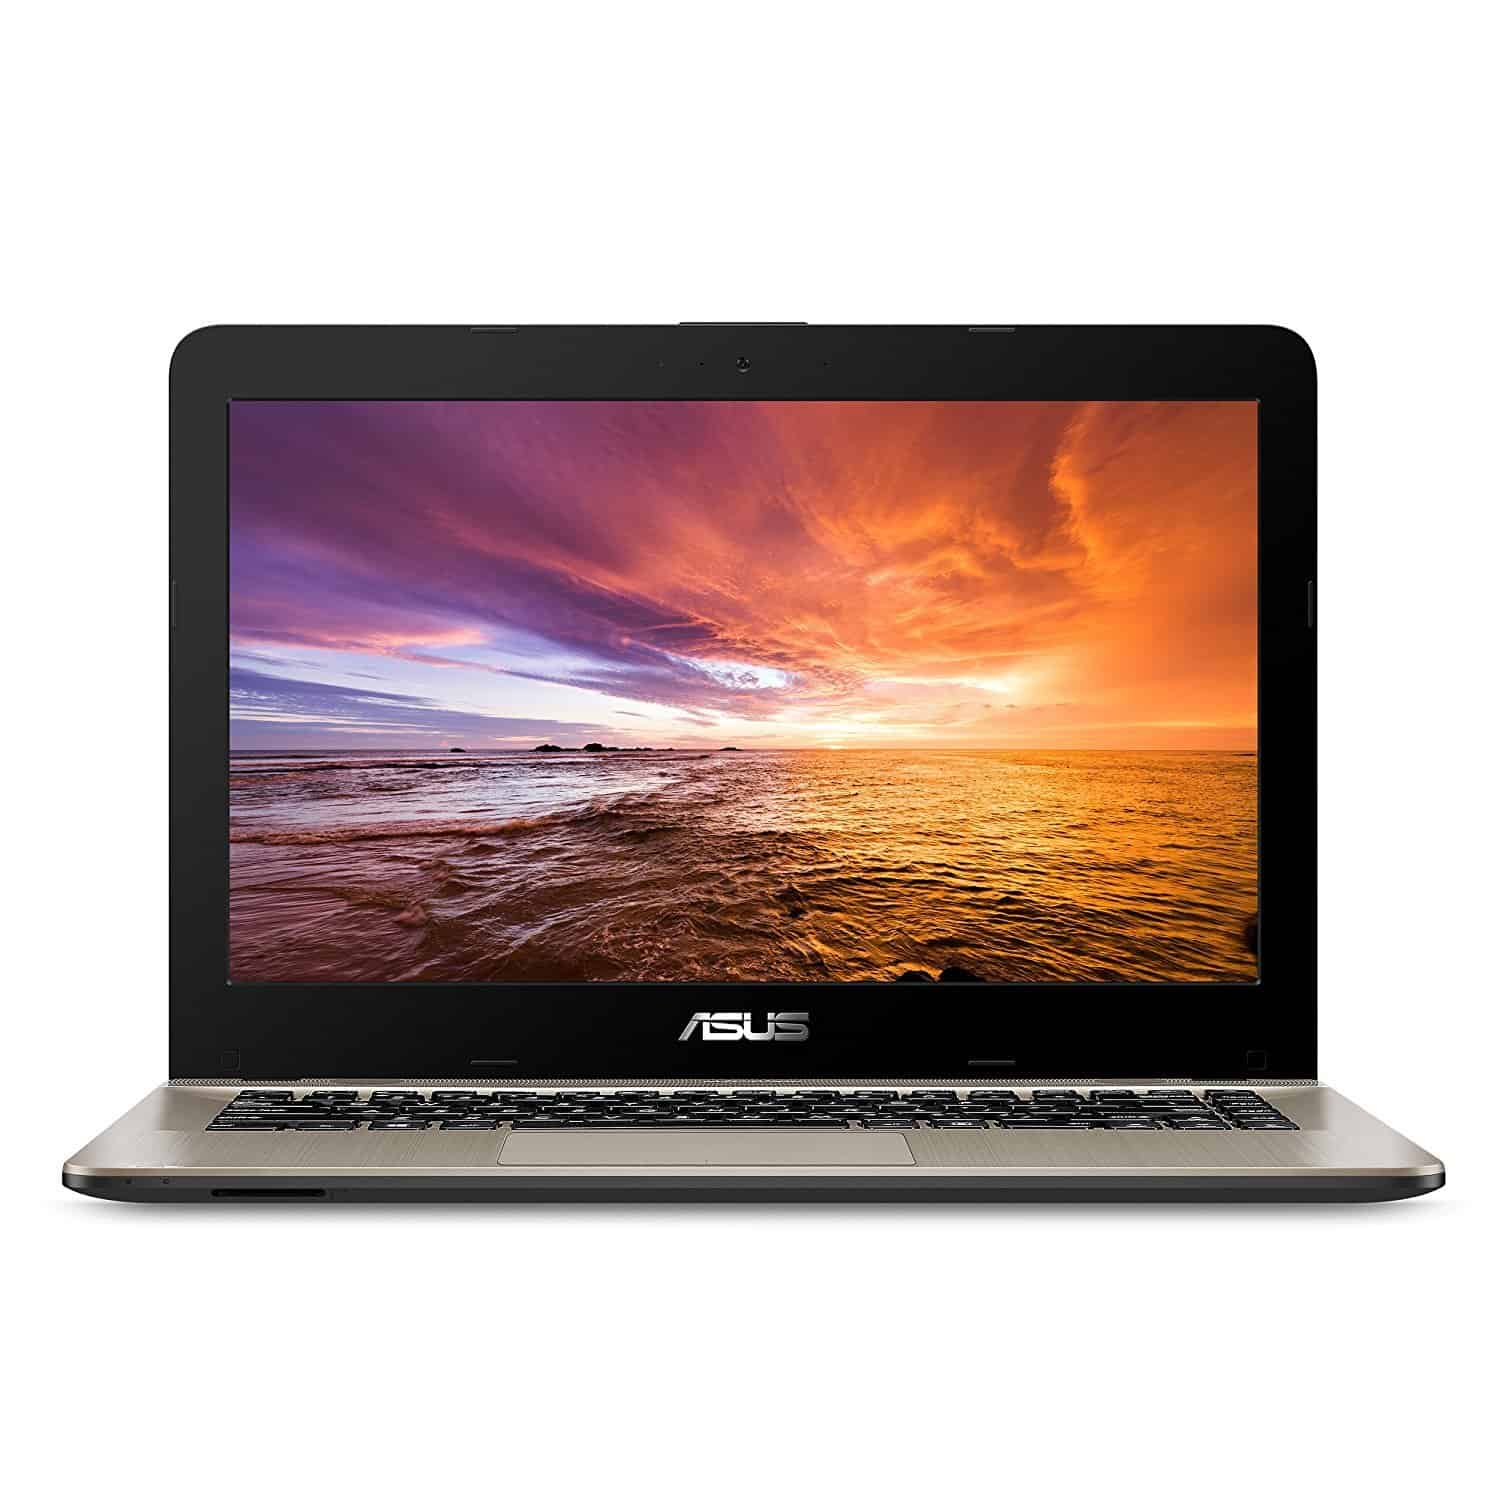 ASUS VivoBook F441 Review